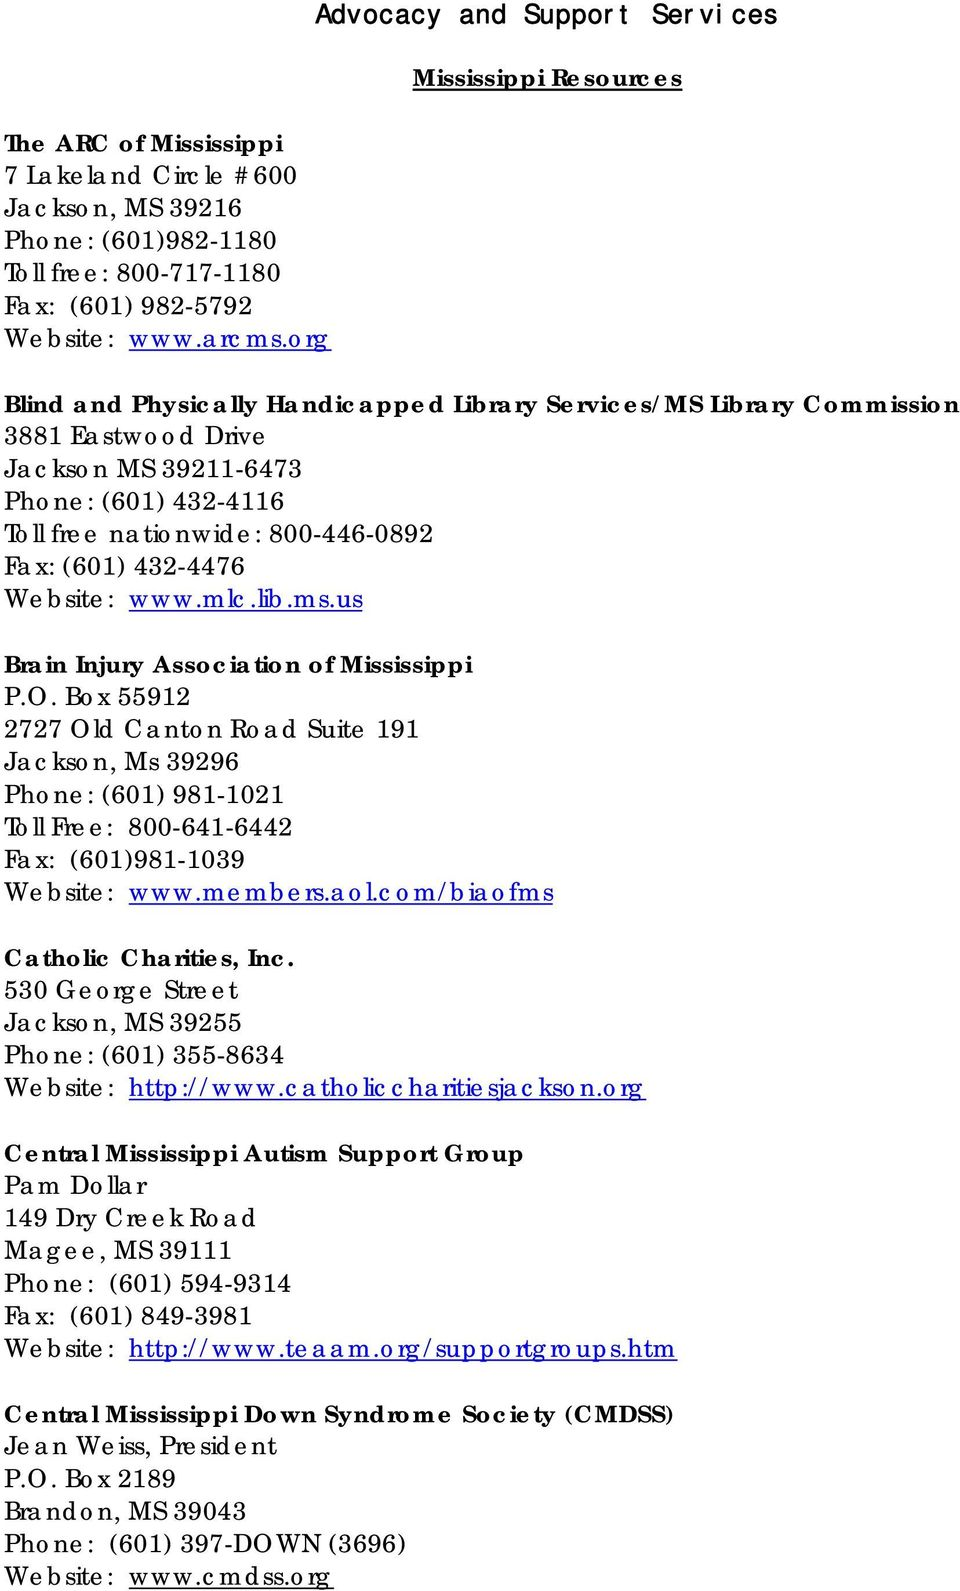 free nationwide: 800-446-0892 Fax: (601) 432-4476 Website: www.mlc.lib.ms.us Brain Injury Association of Mississippi P.O.